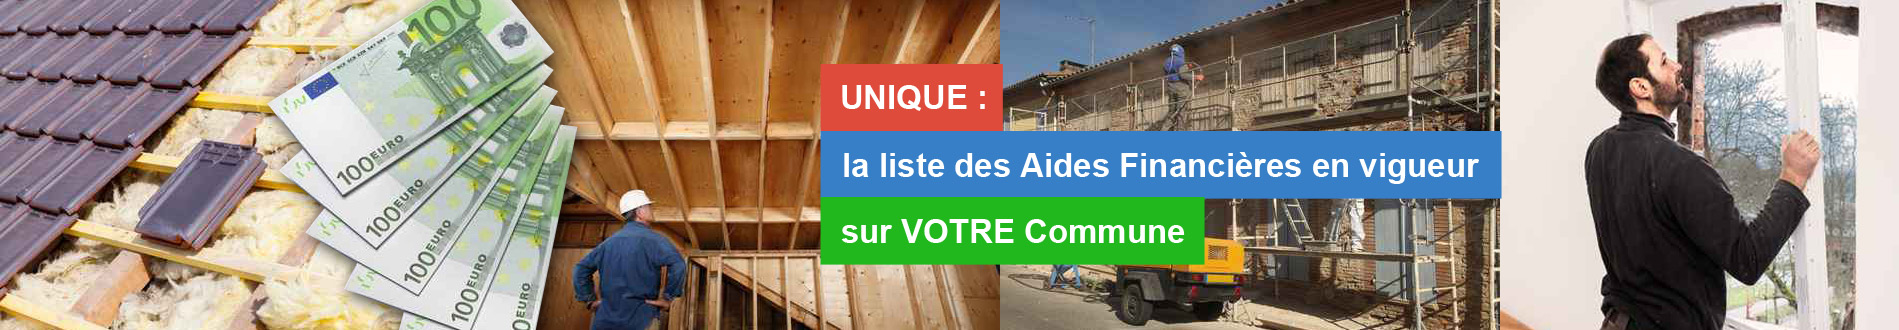 slider-1-aides-travaux-renovation